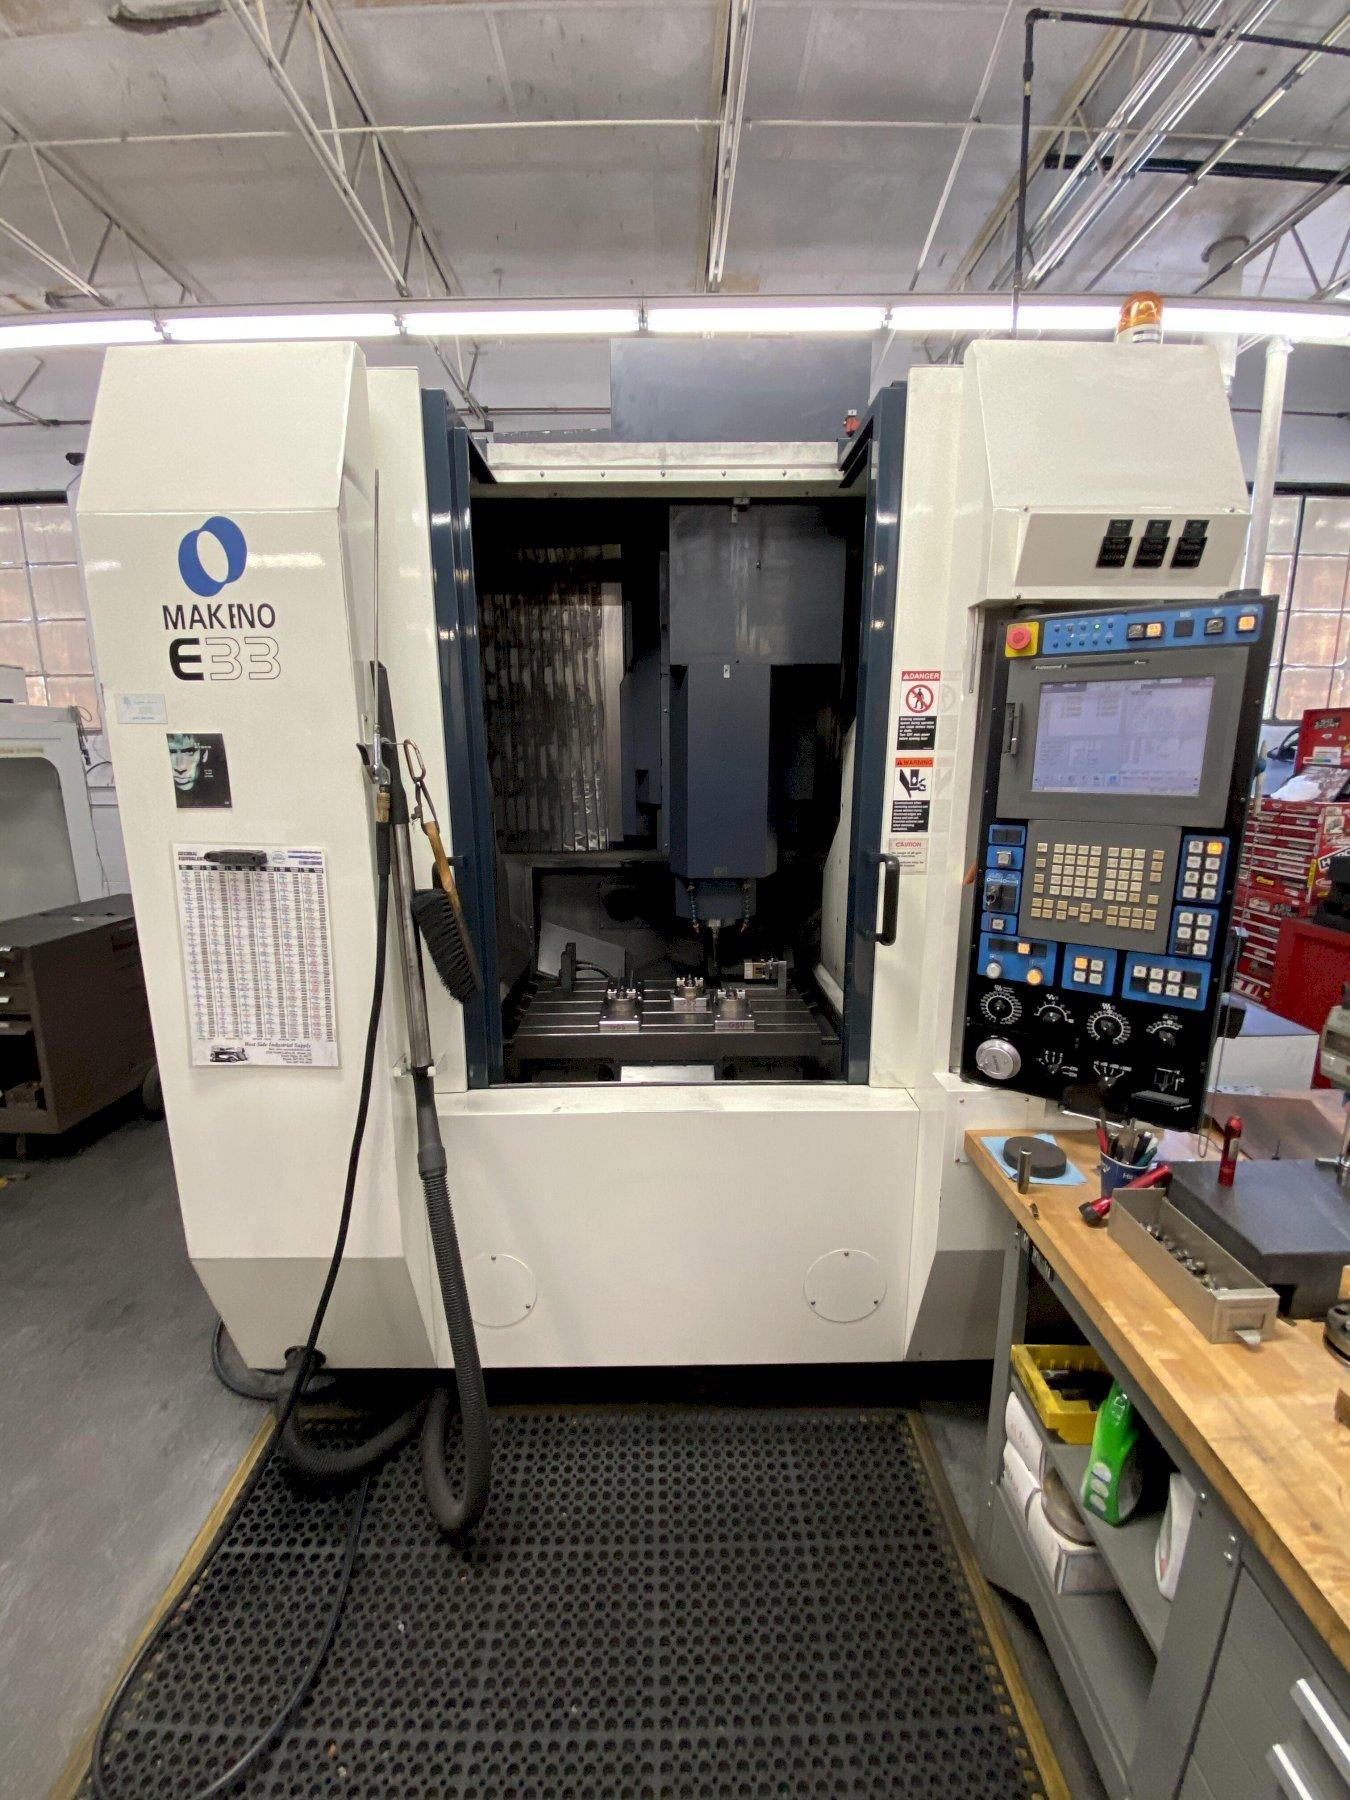 MAKINO E33 VERTICAL MACHINING CENTER